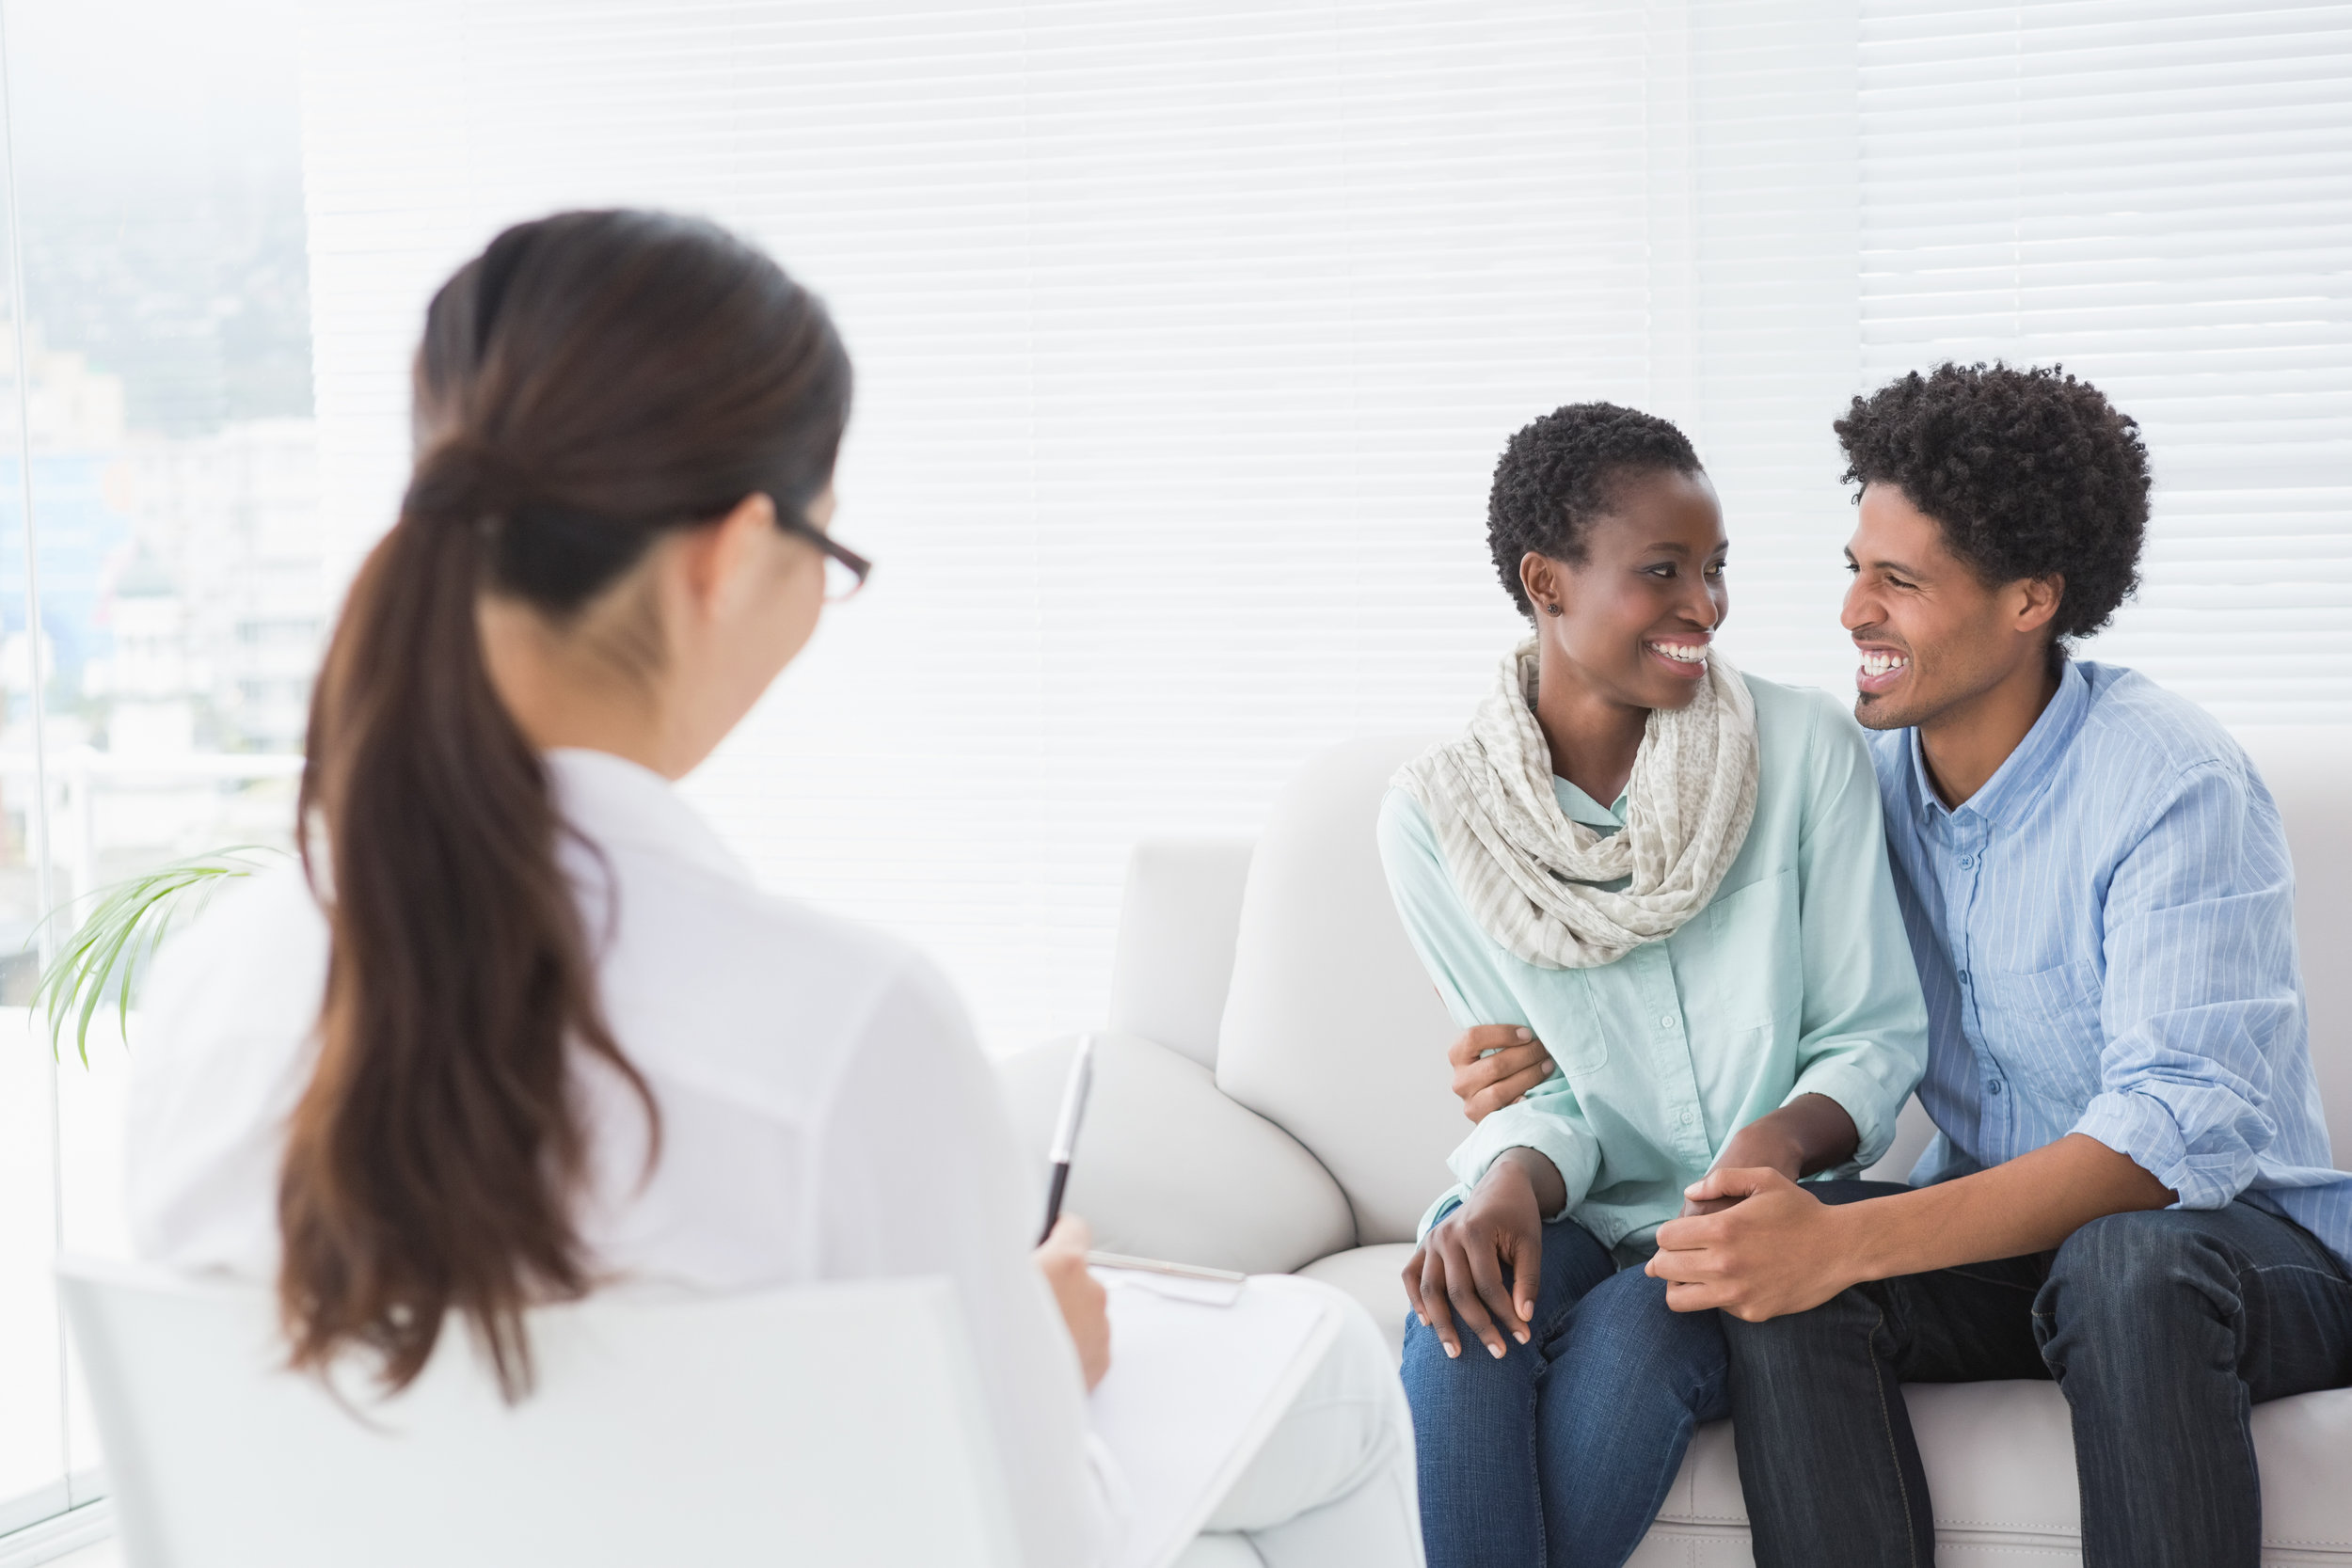 EFT trained therapists - Looking to heal or strengthen a relationship that's causing pain? An EFT trained therapist can work with you to help you find your way back to each other and build a safer, more secure partnership.